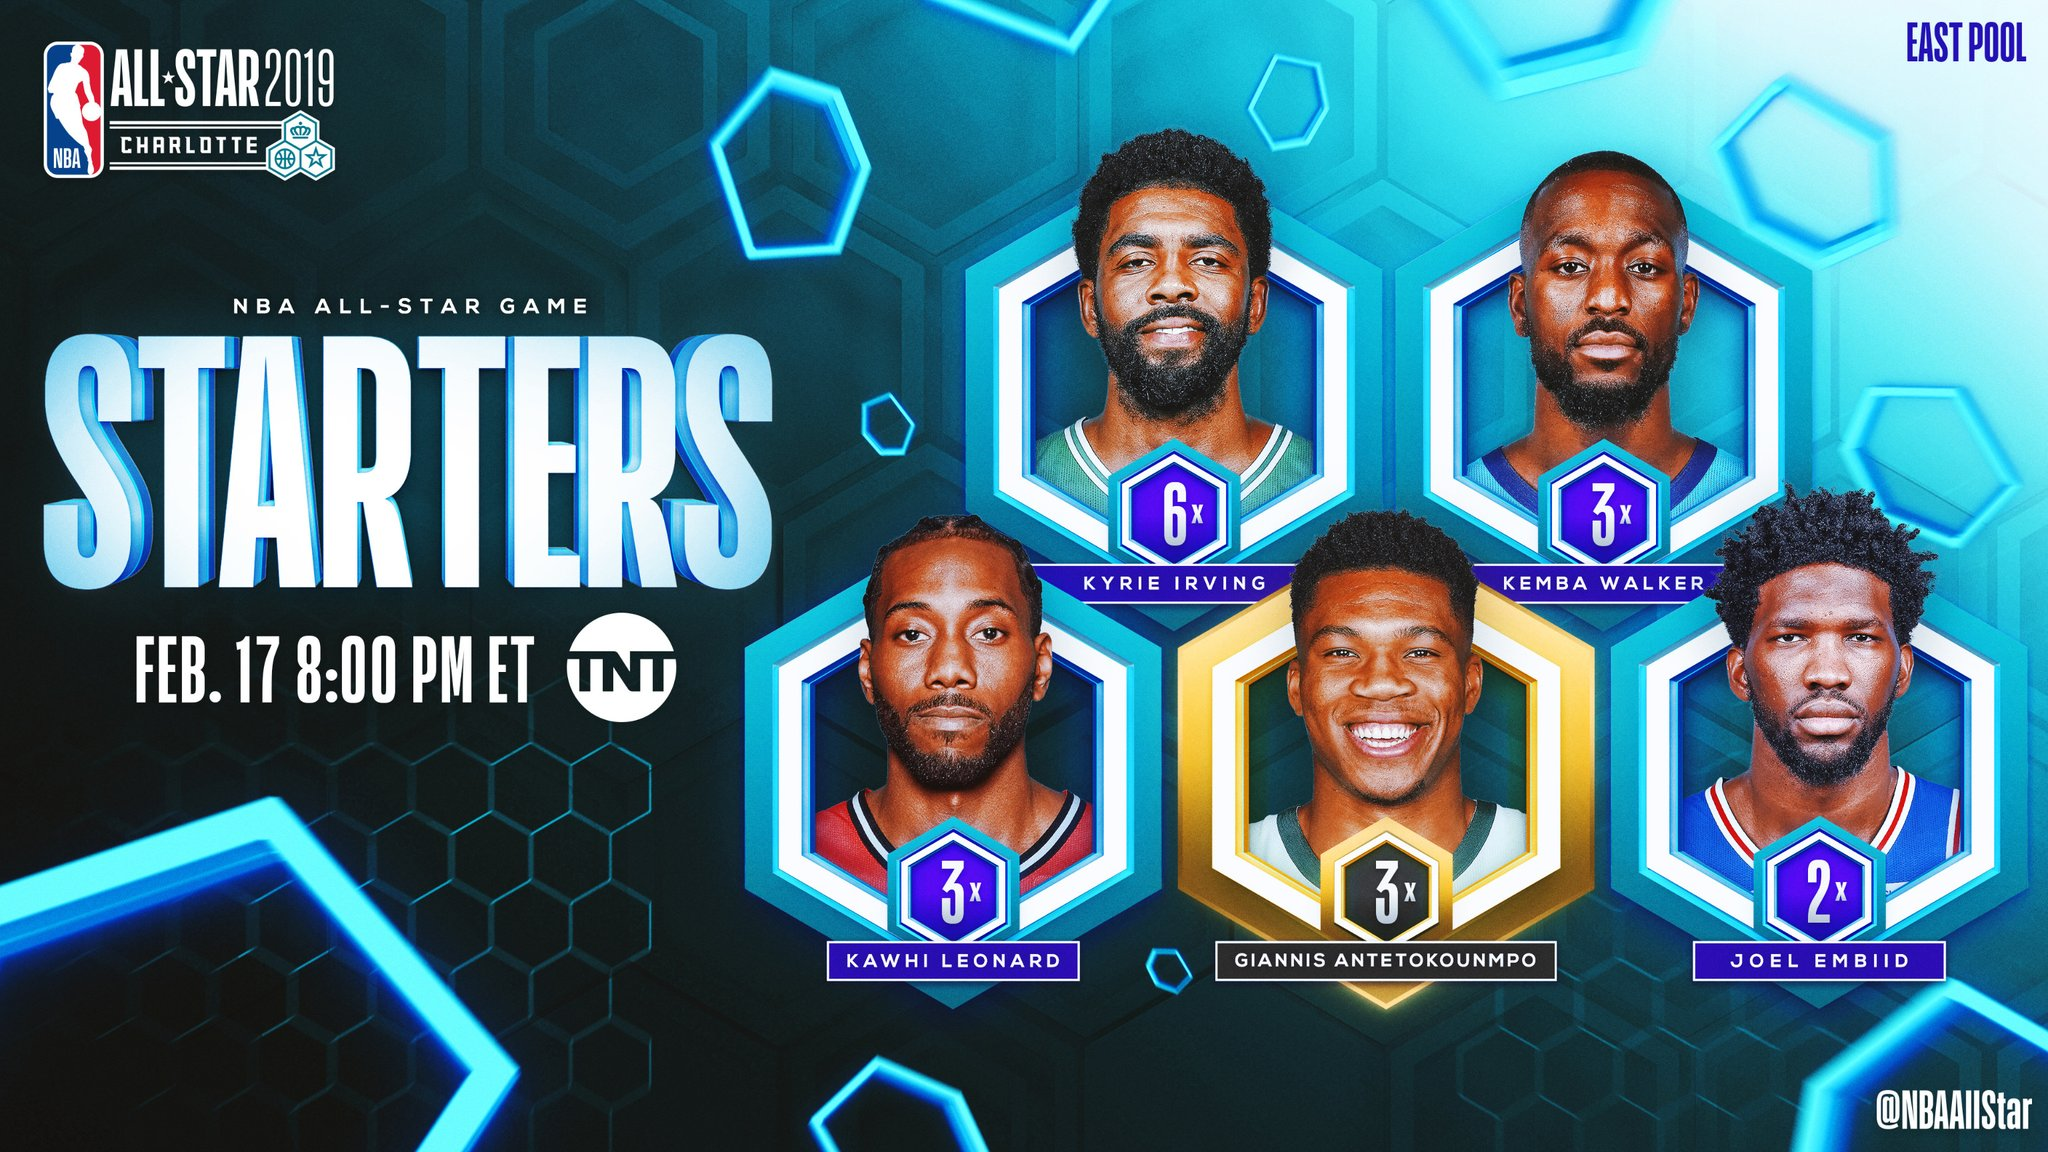 Antetokounmpo, James, Curry and Irving lead 2019 NBA All ...